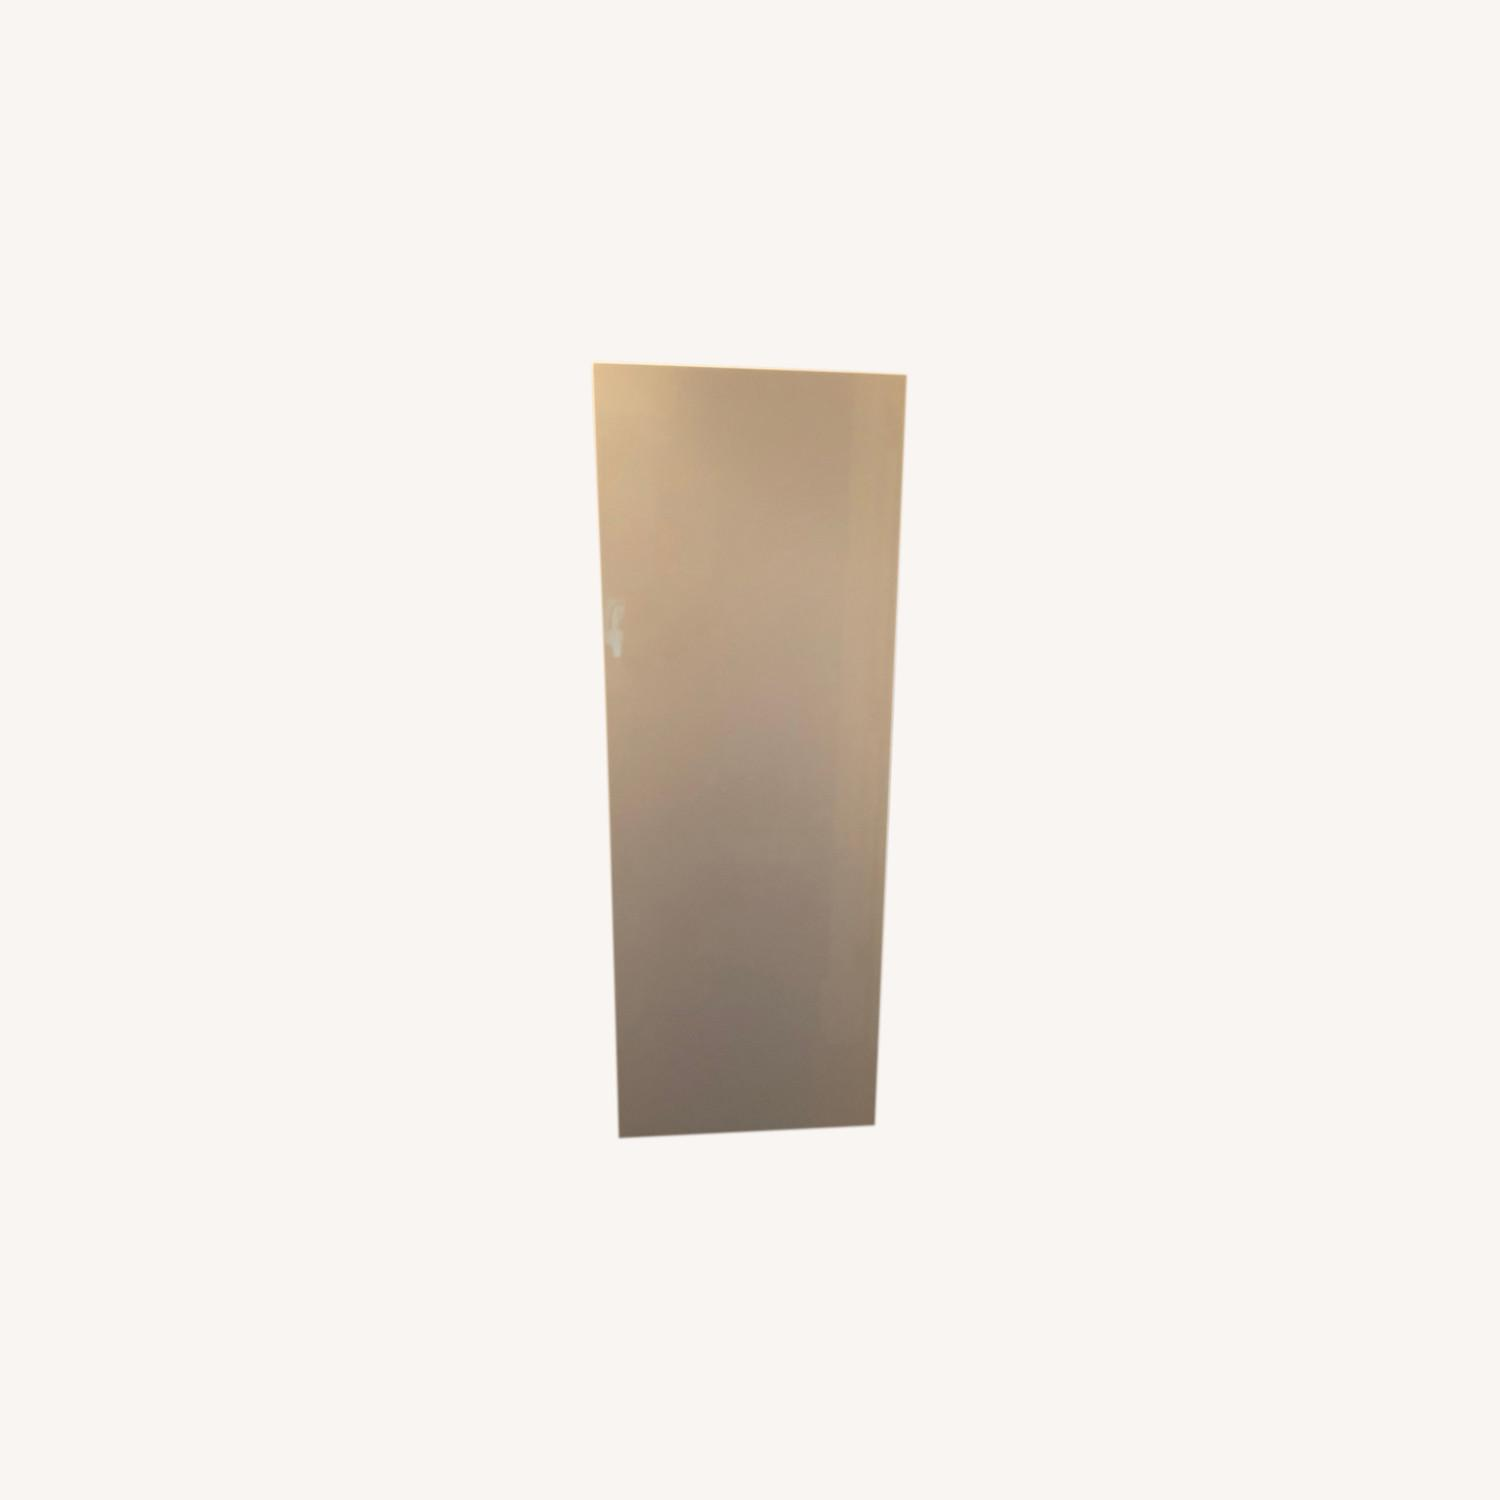 Lazzoni White Wood and Lacquer Wall Cabinet - image-3